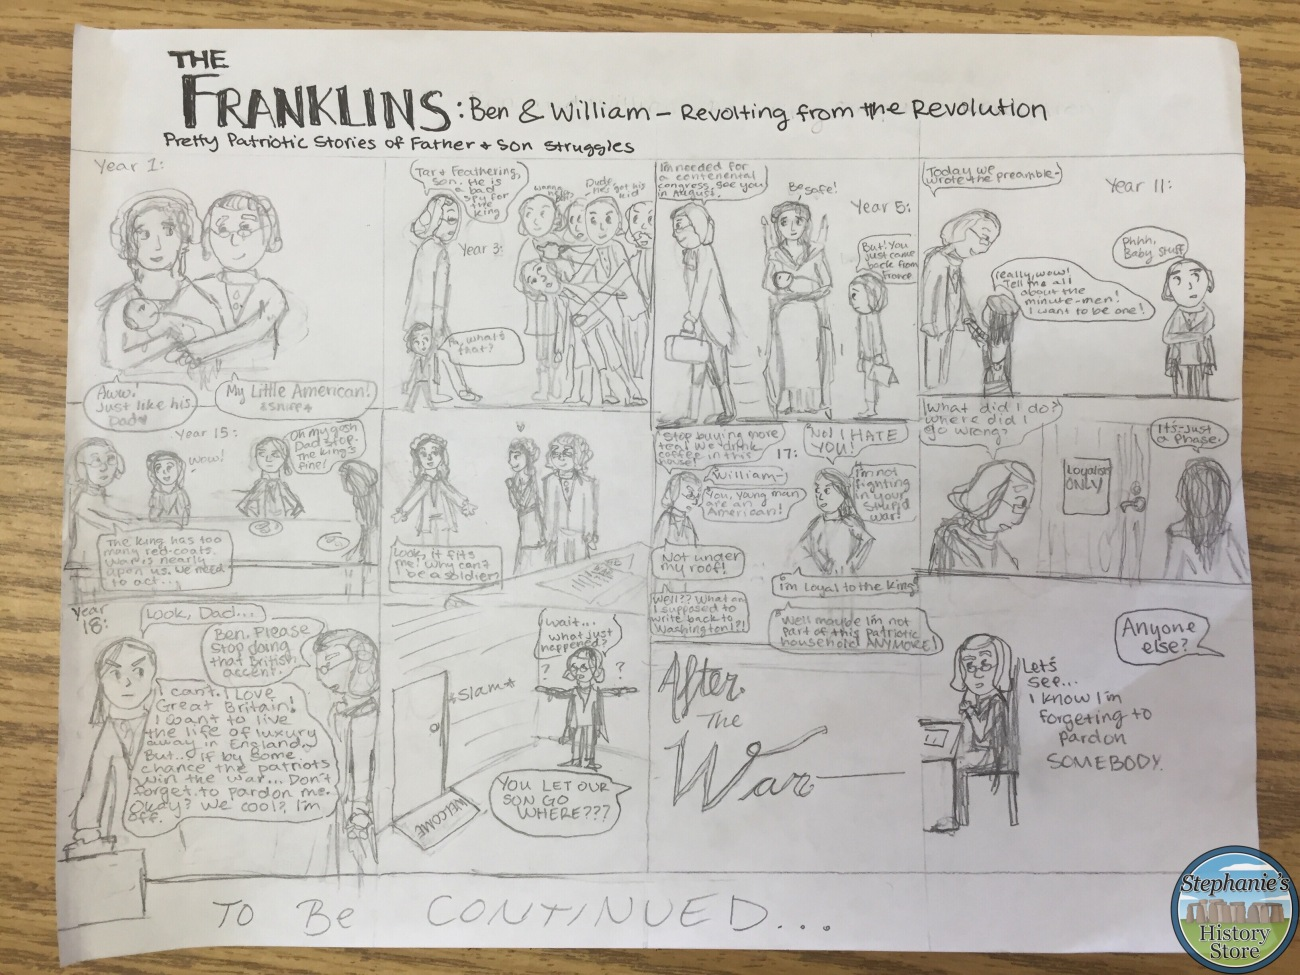 creating historical fiction out of comic strips